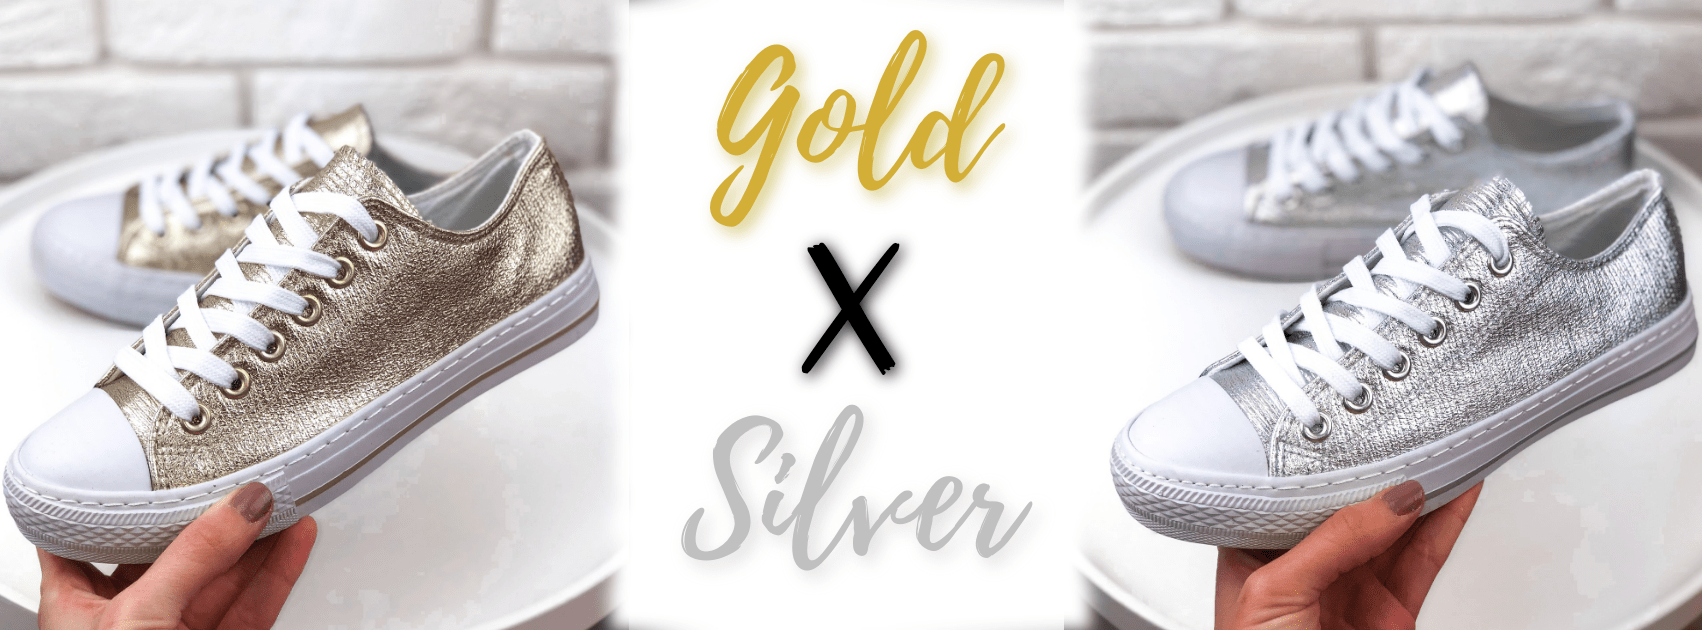 Tenisky Conver Gold x Silver